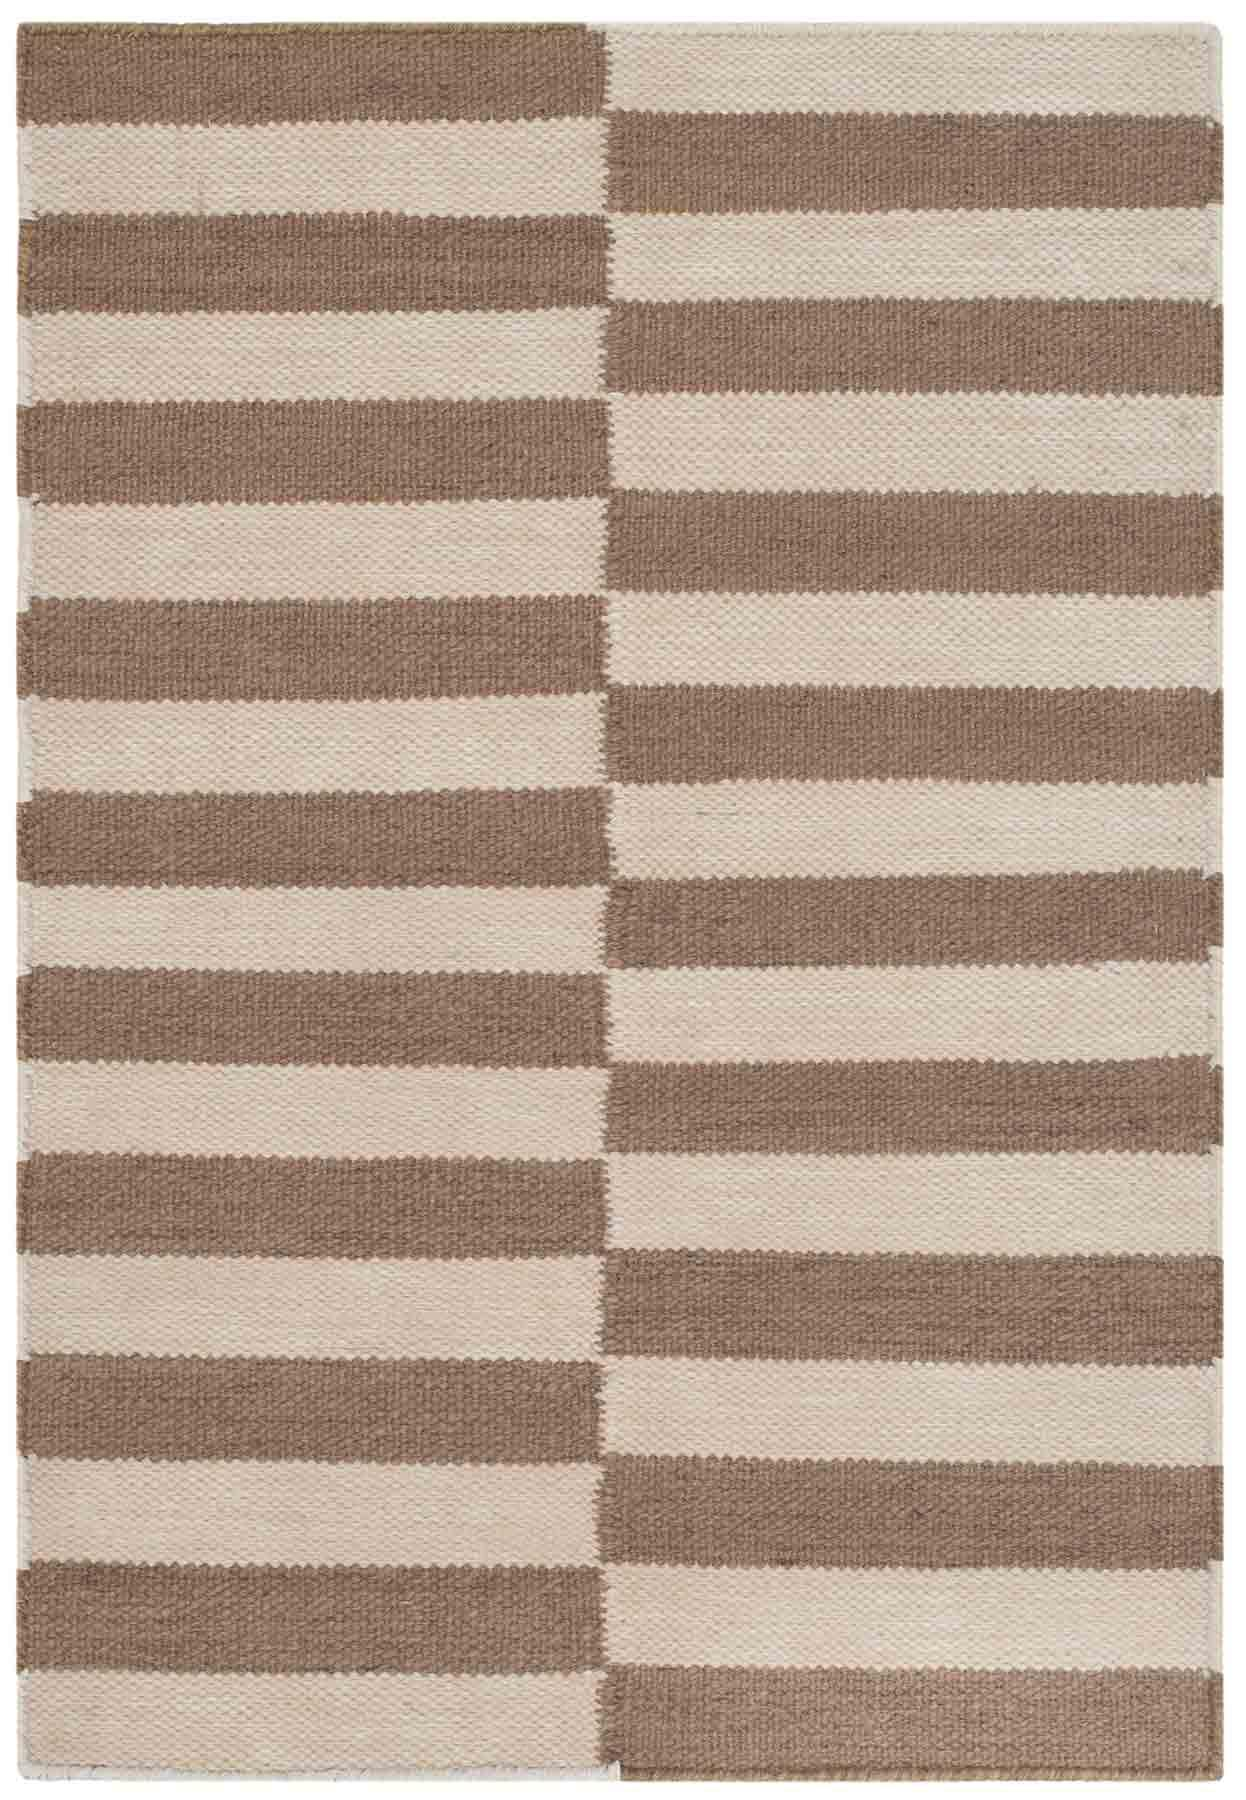 Rug Rlr2221d River Reed Stripe Ralph Lauren Area Rugs By